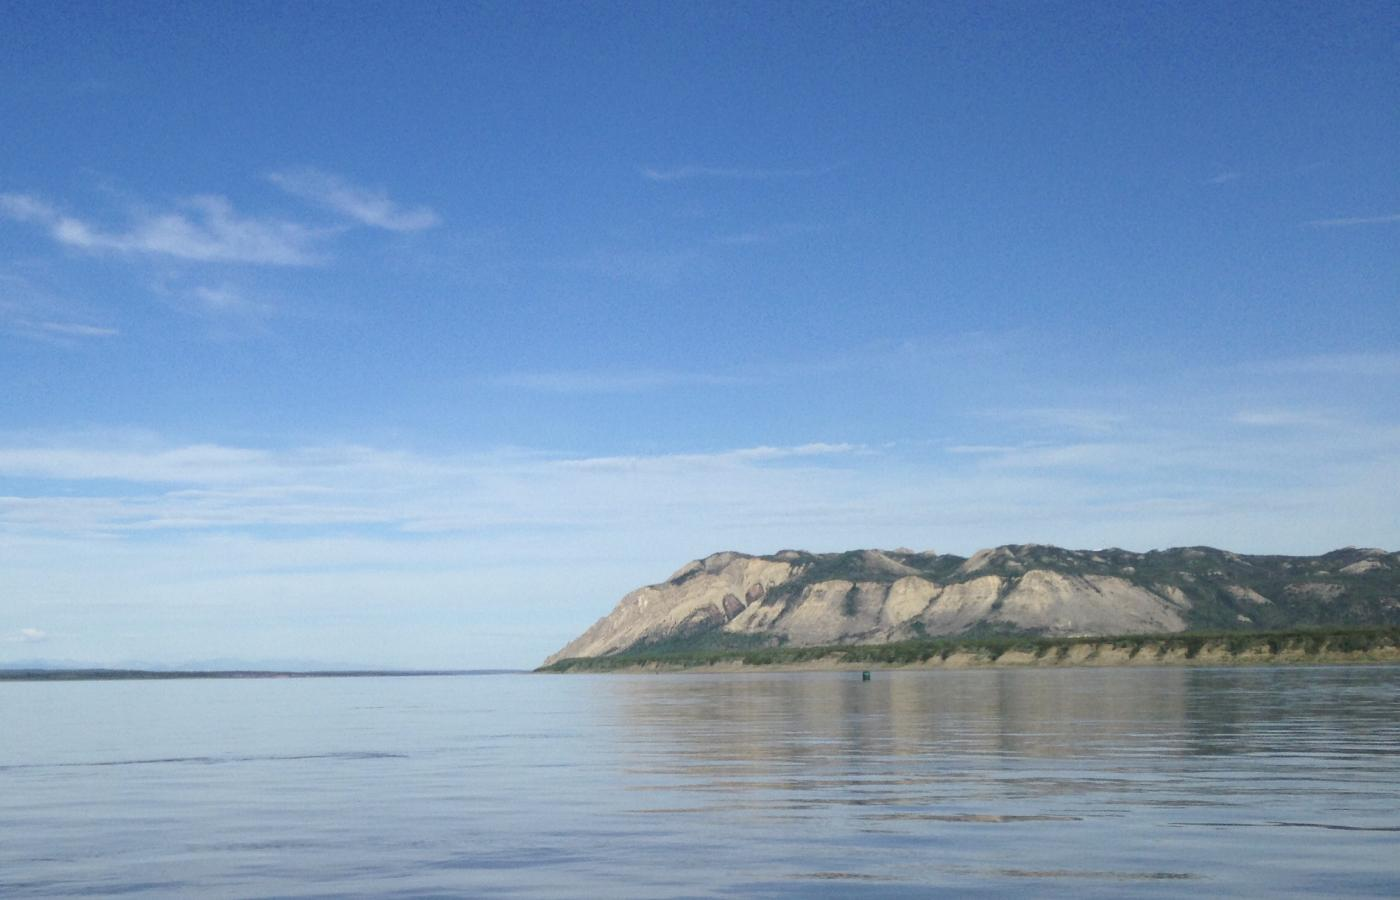 Bear Rock, at the confluence of the Bear and Mackenzie rivers, near Tulita, NWT, in the Sahtu region.